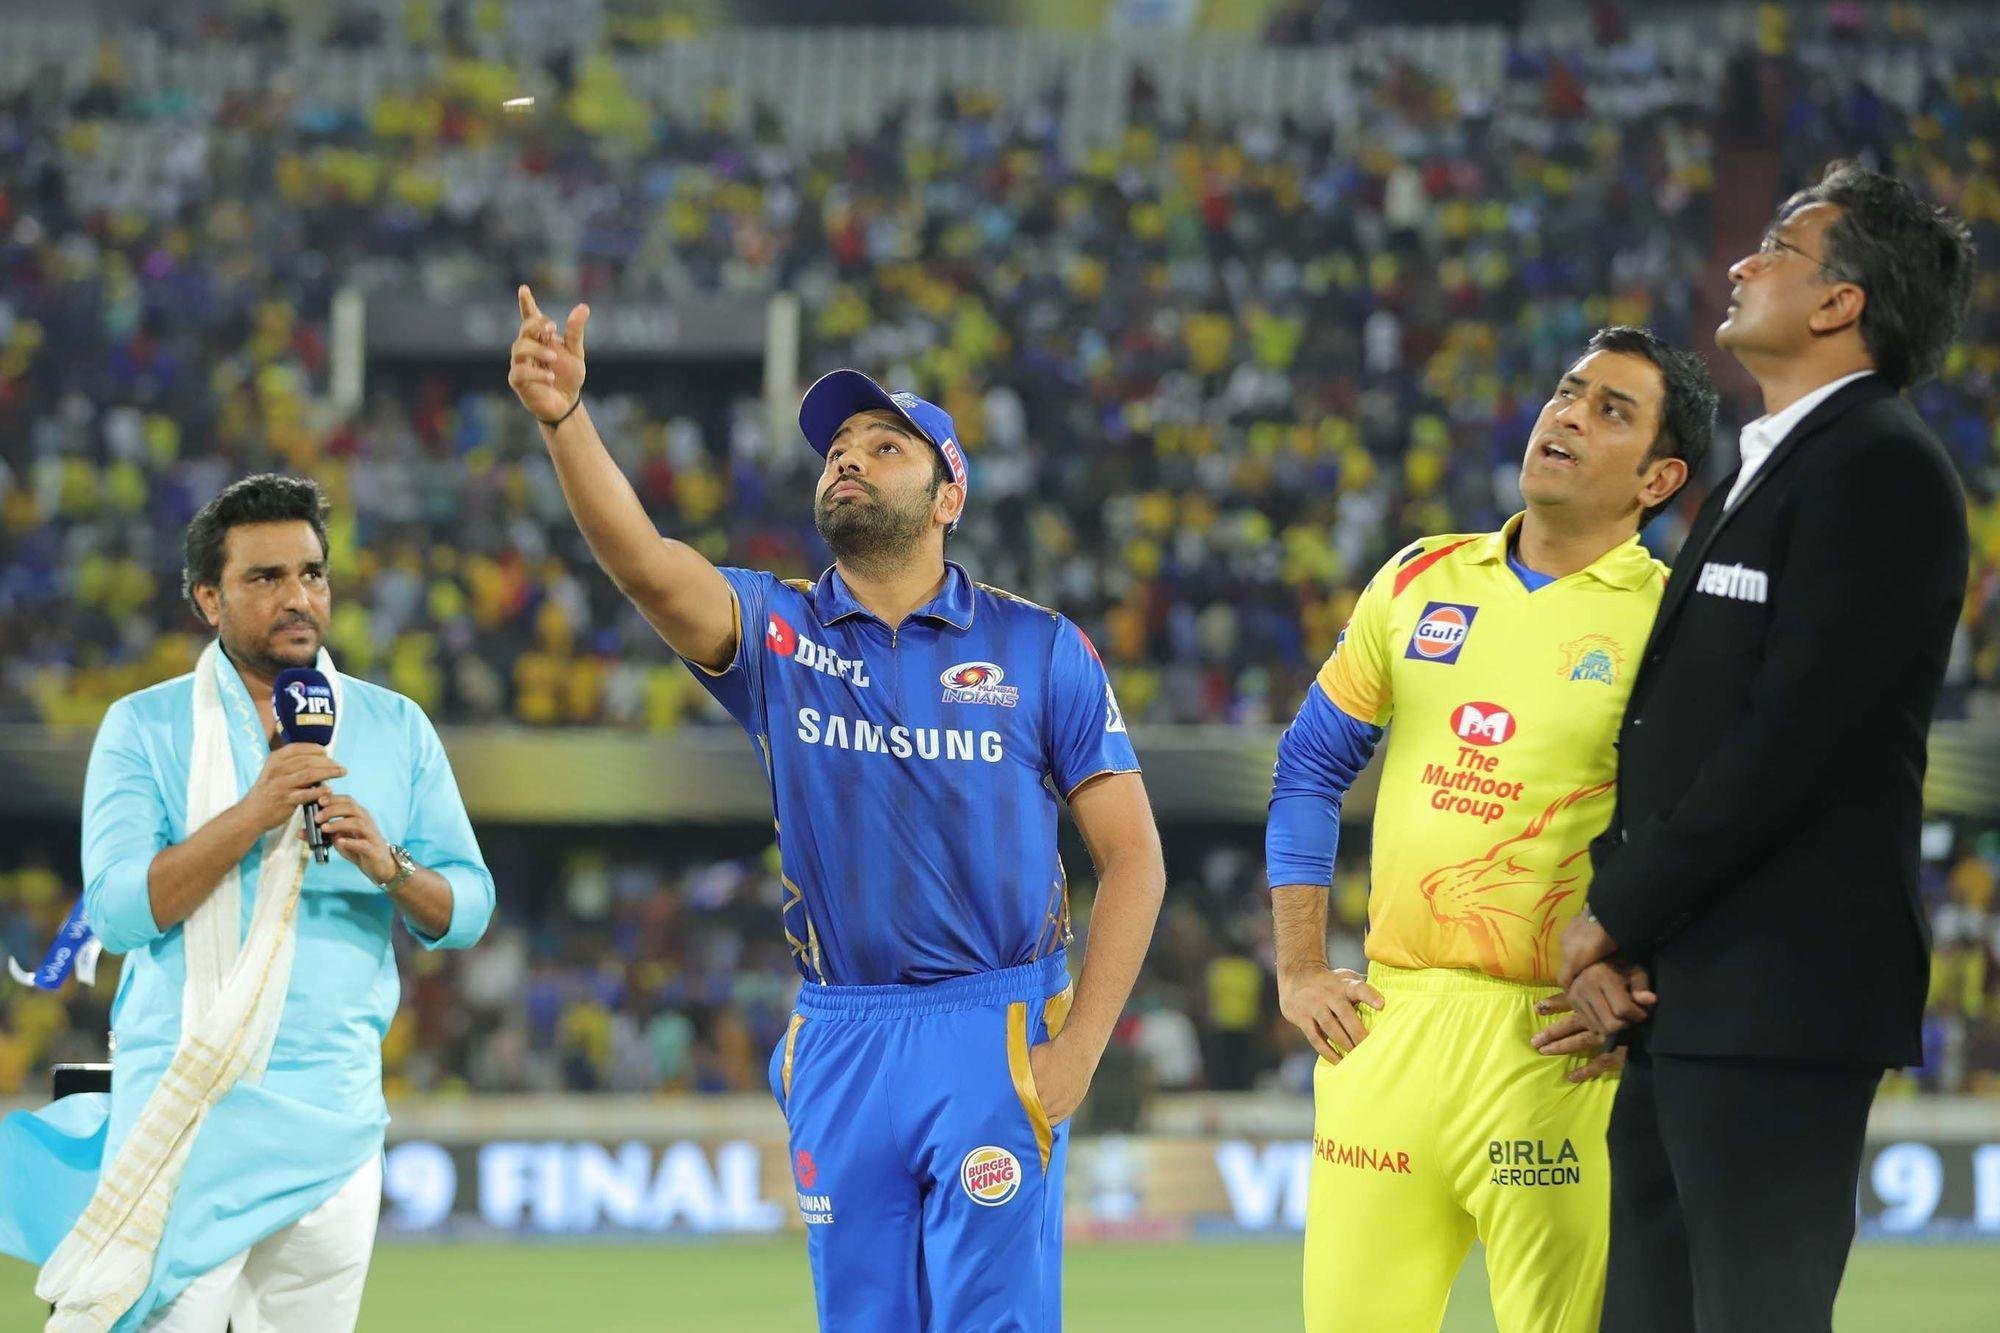 Mumbai Indians captain Rohit Sharma and Chennai Super Kings captain MS Dhoni during the toss ahead of the IPL 2019 final match between the two teams. (File Image/Photo Courtesy: BCCI)